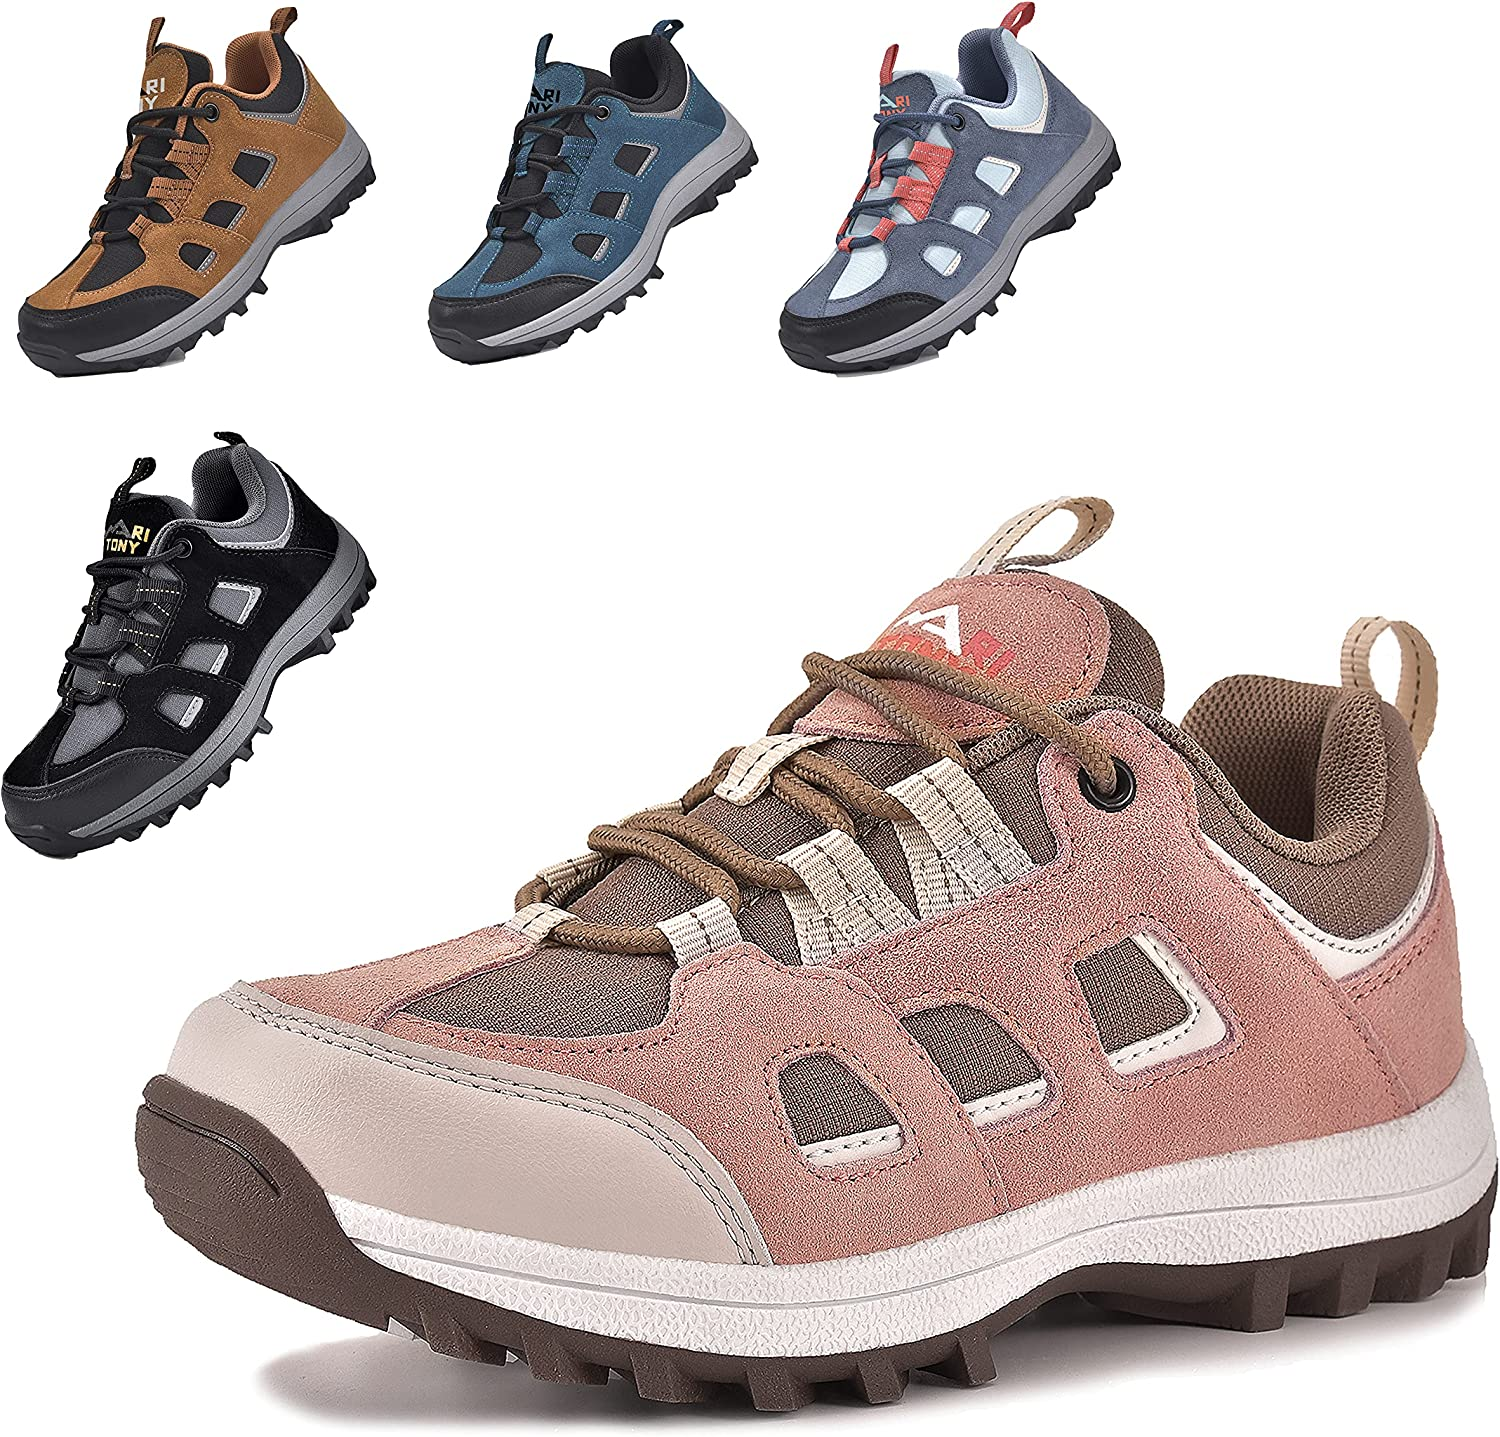 MARITONY Unisex-Child Hiking Shoes for Kids Sneakers Boys Girls Anti Collision Outdoor Running Athletic Shoe Non-Slip Sneaker